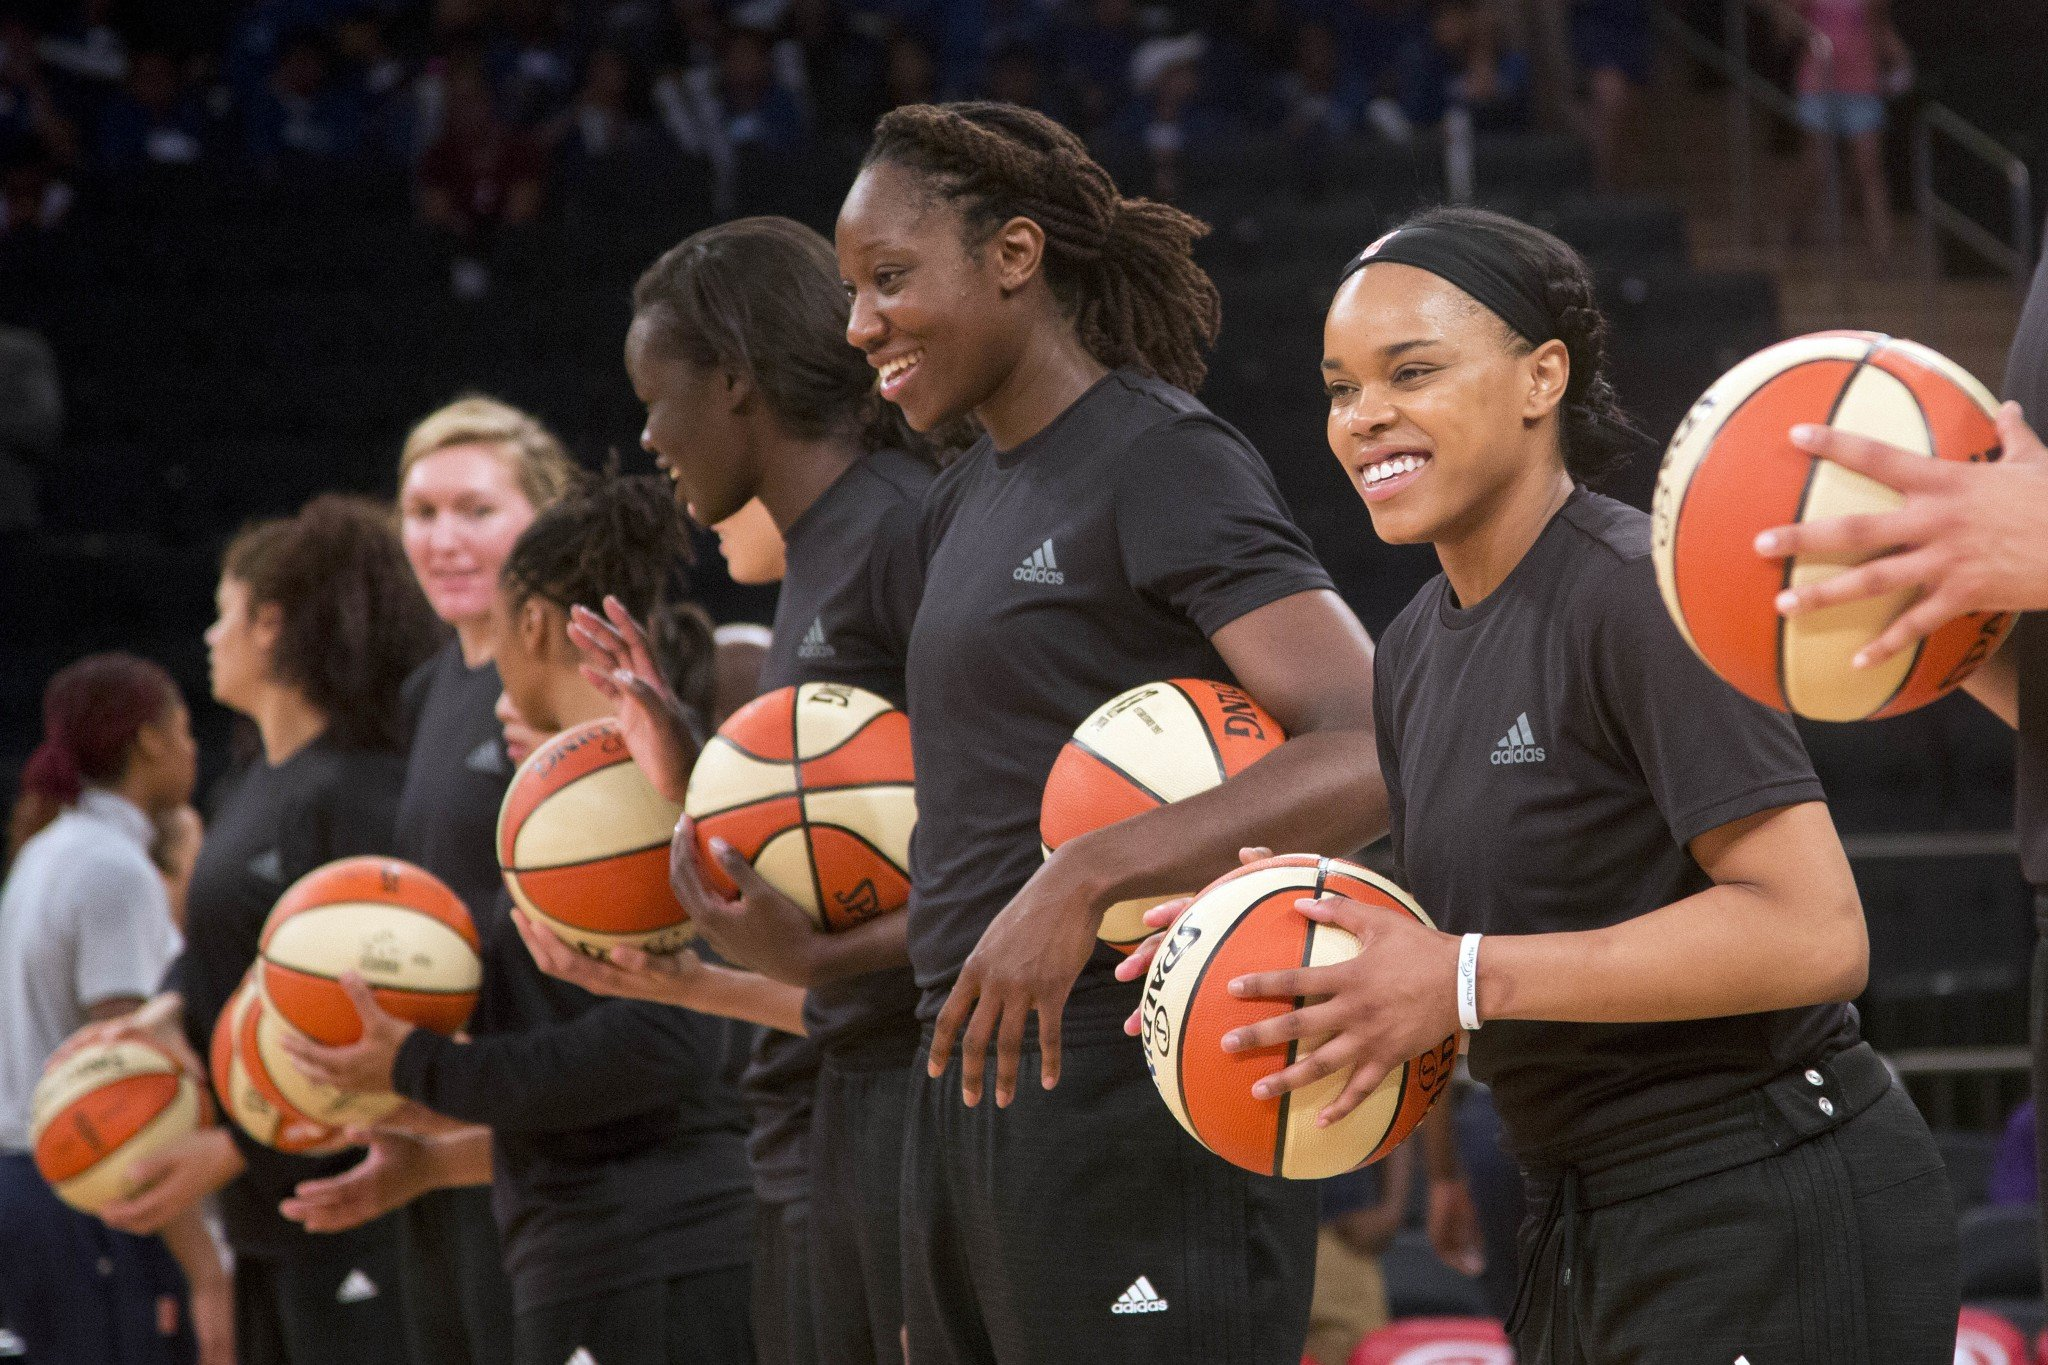 Members of the New York Liberty await the start of a game against the Atlanta Dream on July 13, 2016. (AP/Mark Lennihan, File)